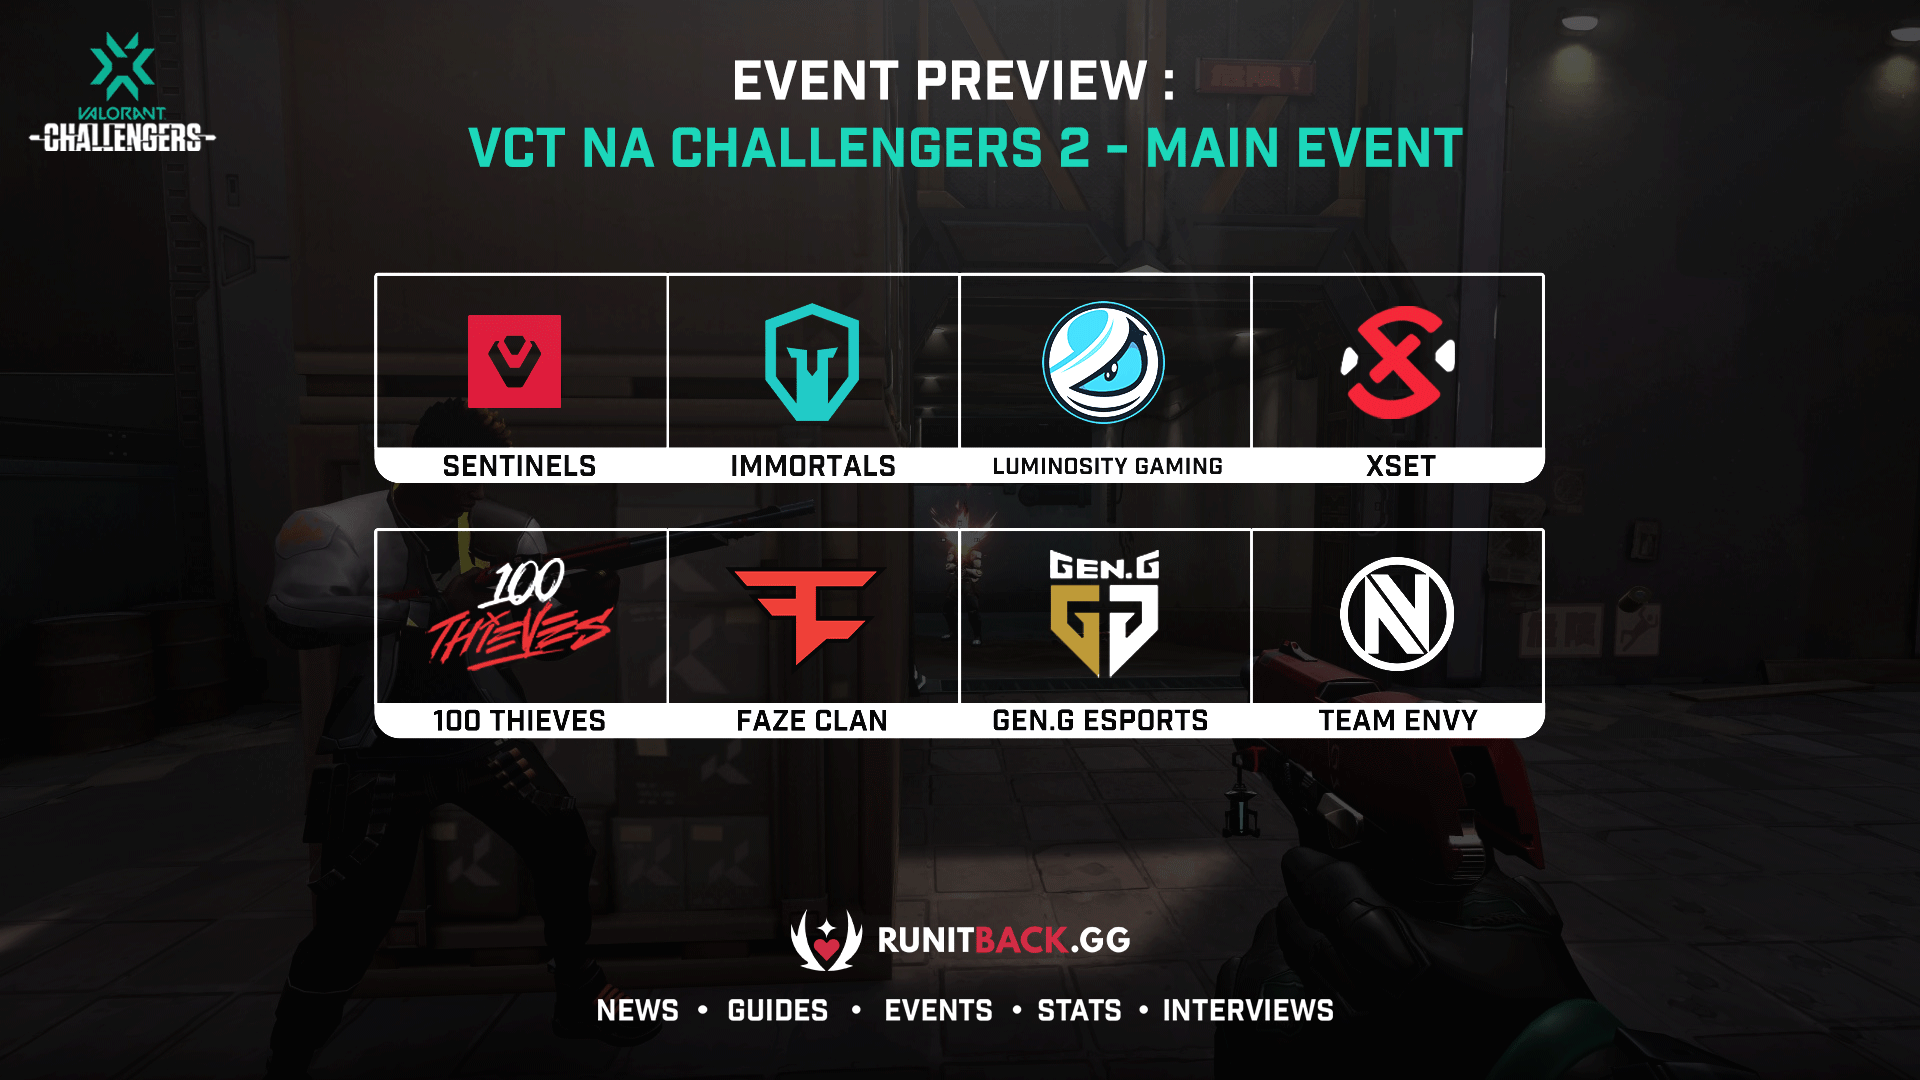 VCT NA Challengers 2 Main Event Preview and Predictions